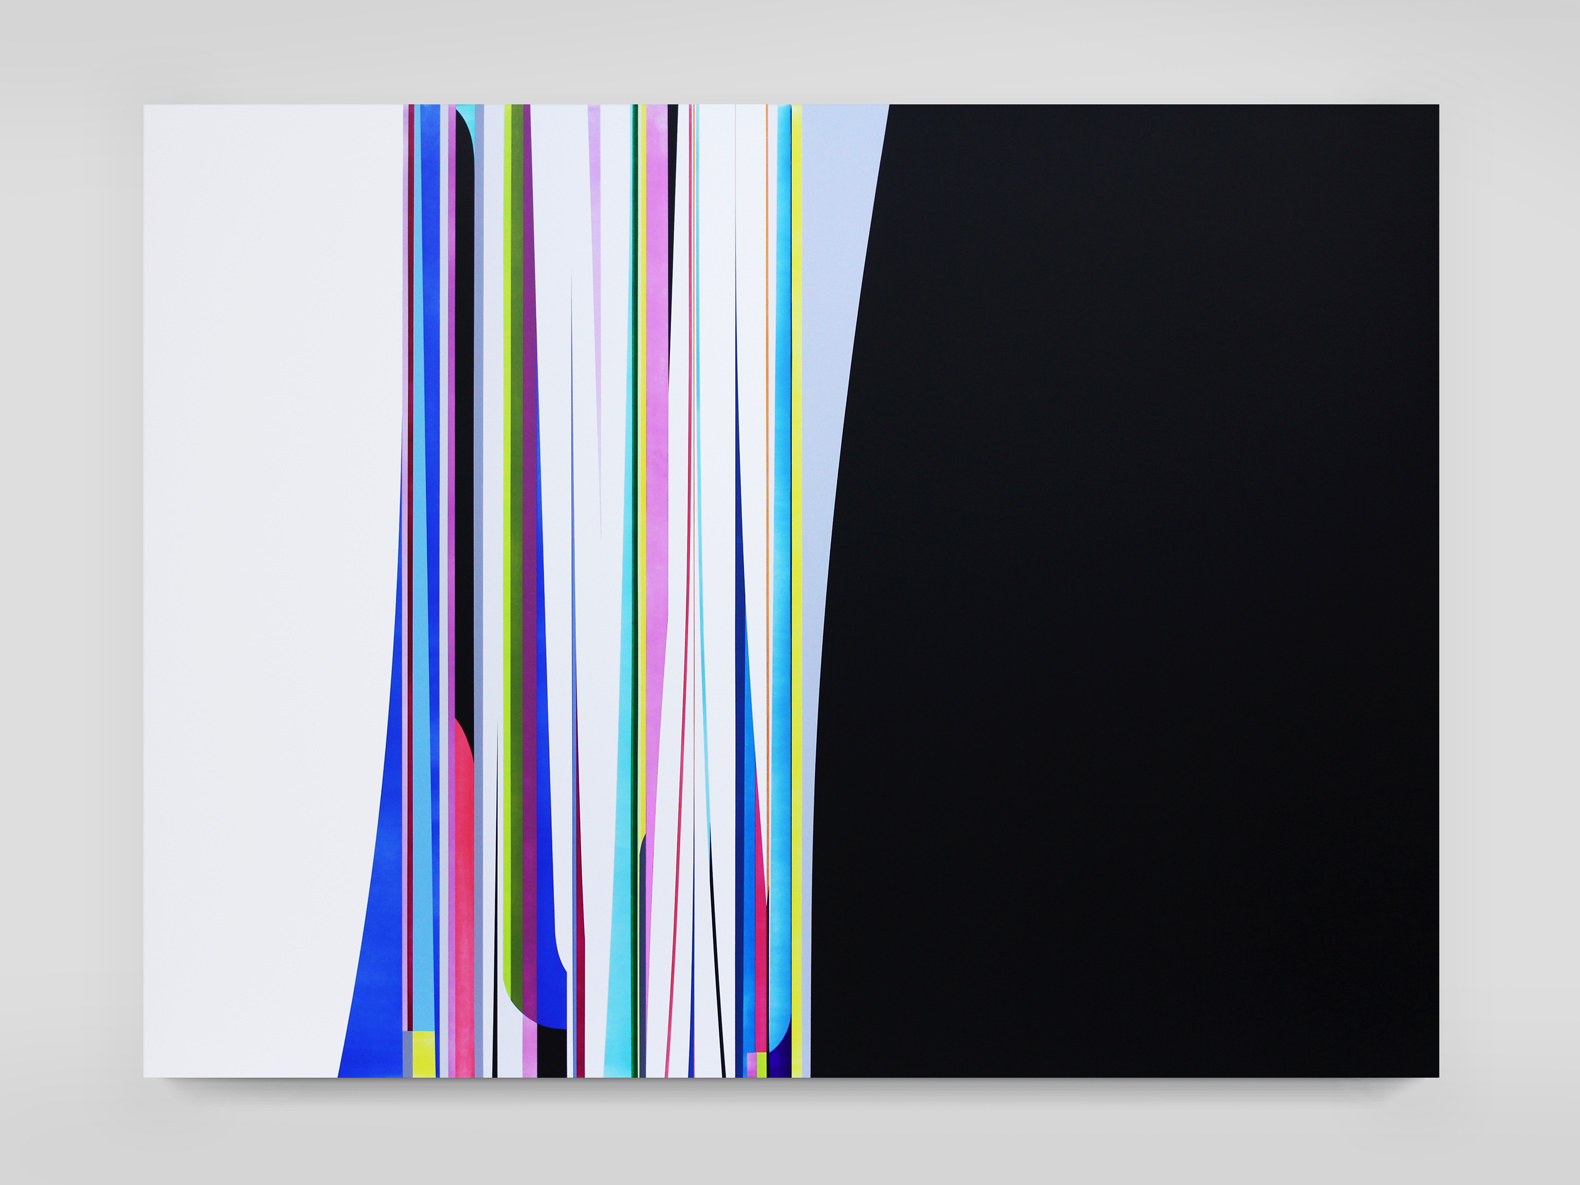 DION JOHNSON, Turnstile, 2015, acrylic on canvas, 60 x 80 inches